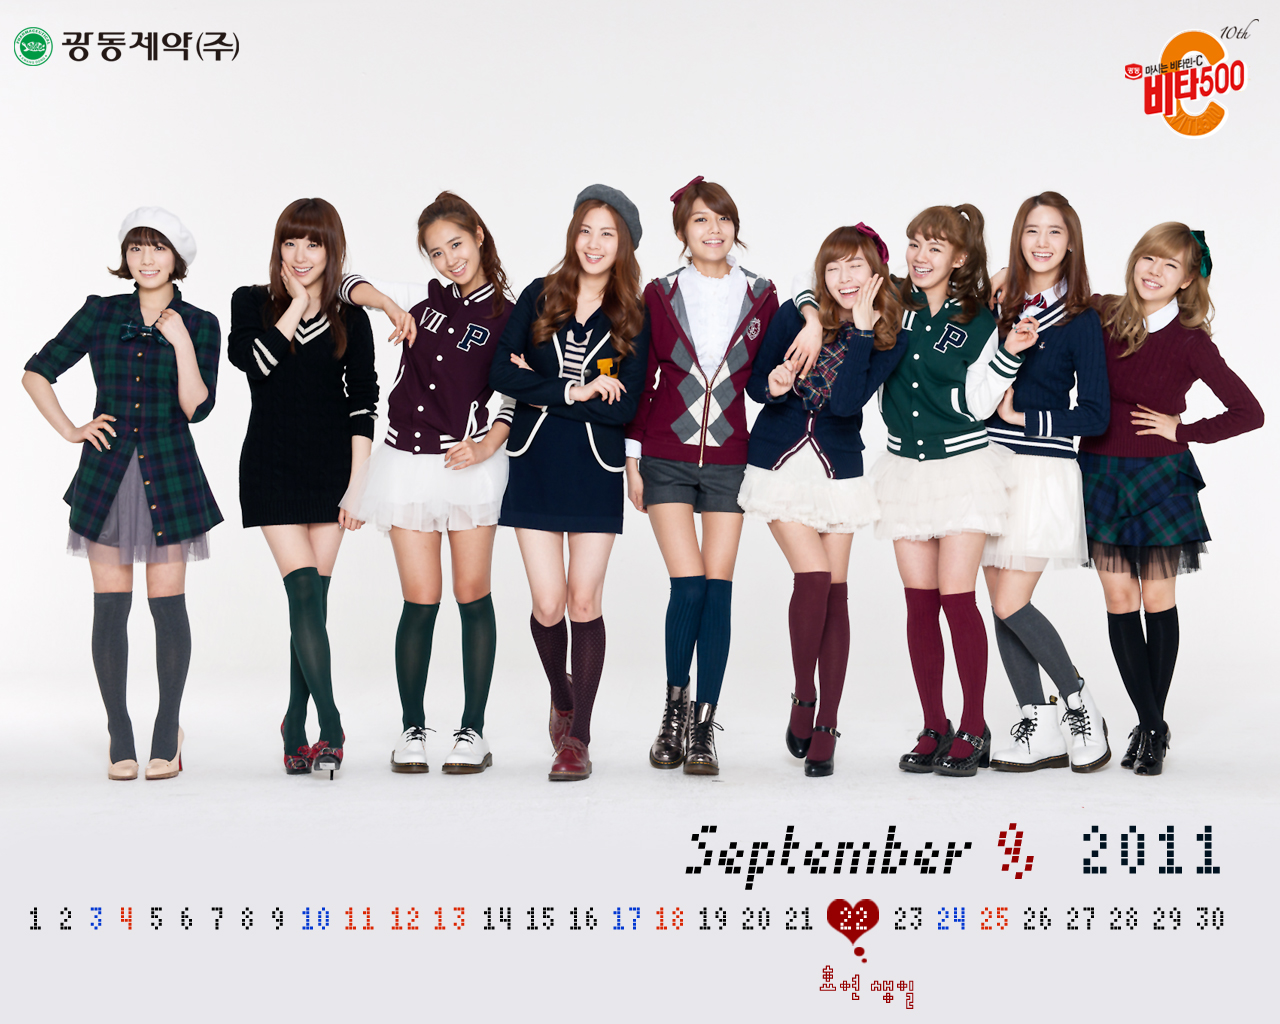 SNSD @ Vita500 Promotion Picture HD - Wallpaper (110829)